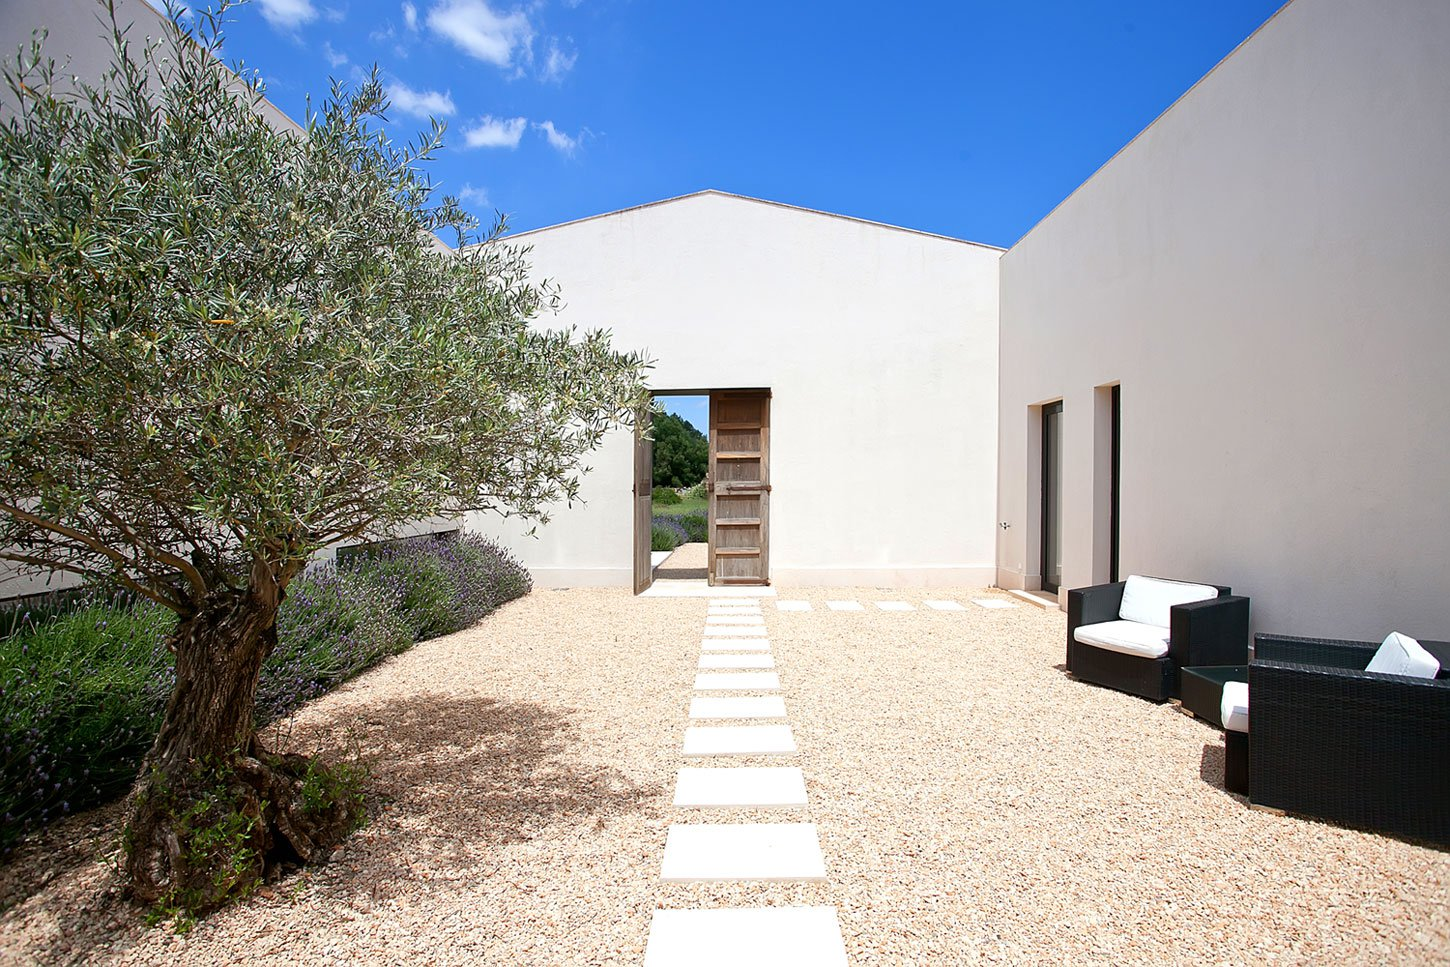 A-Holiday-Home-in-Mallorca-01